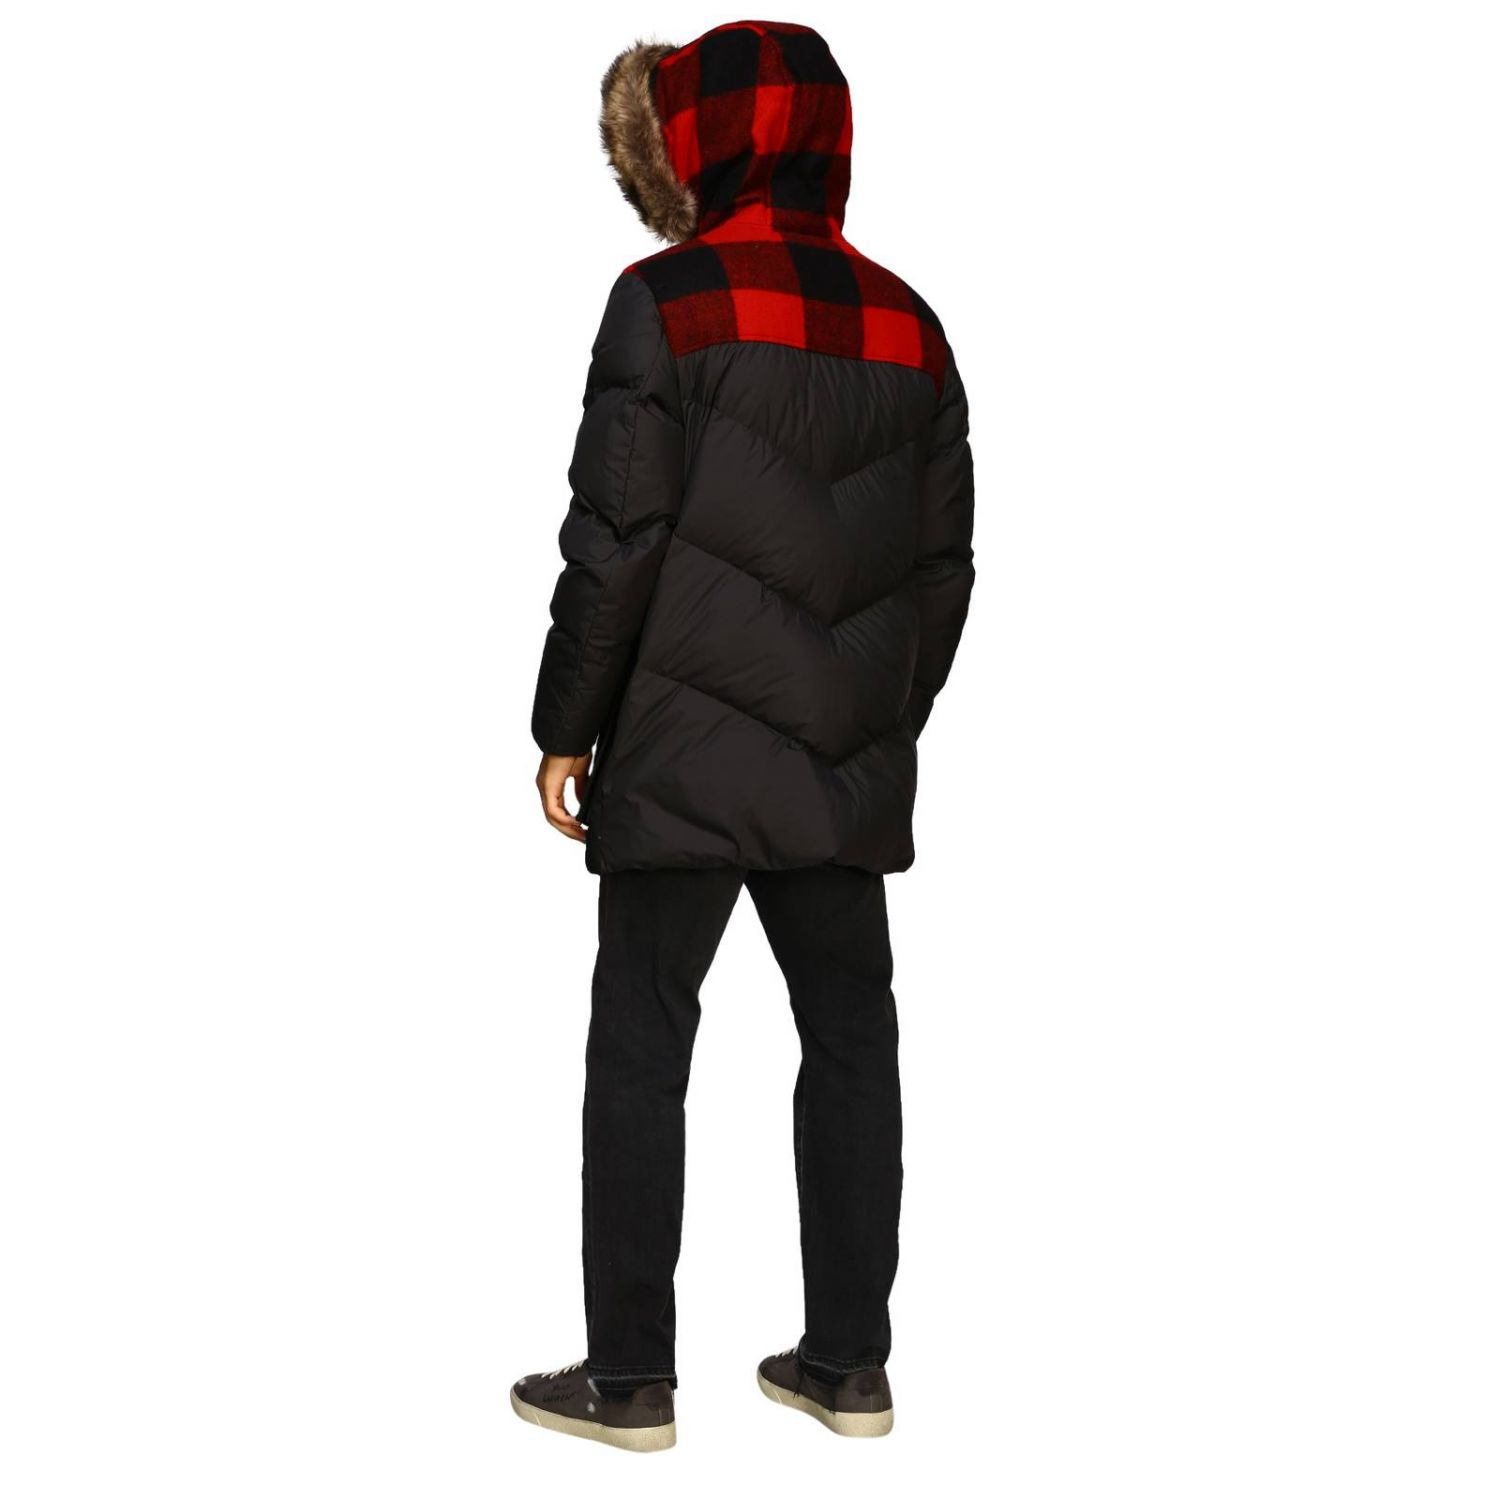 Giacca Woolrich: Giacca uomo Woolrich nero 3